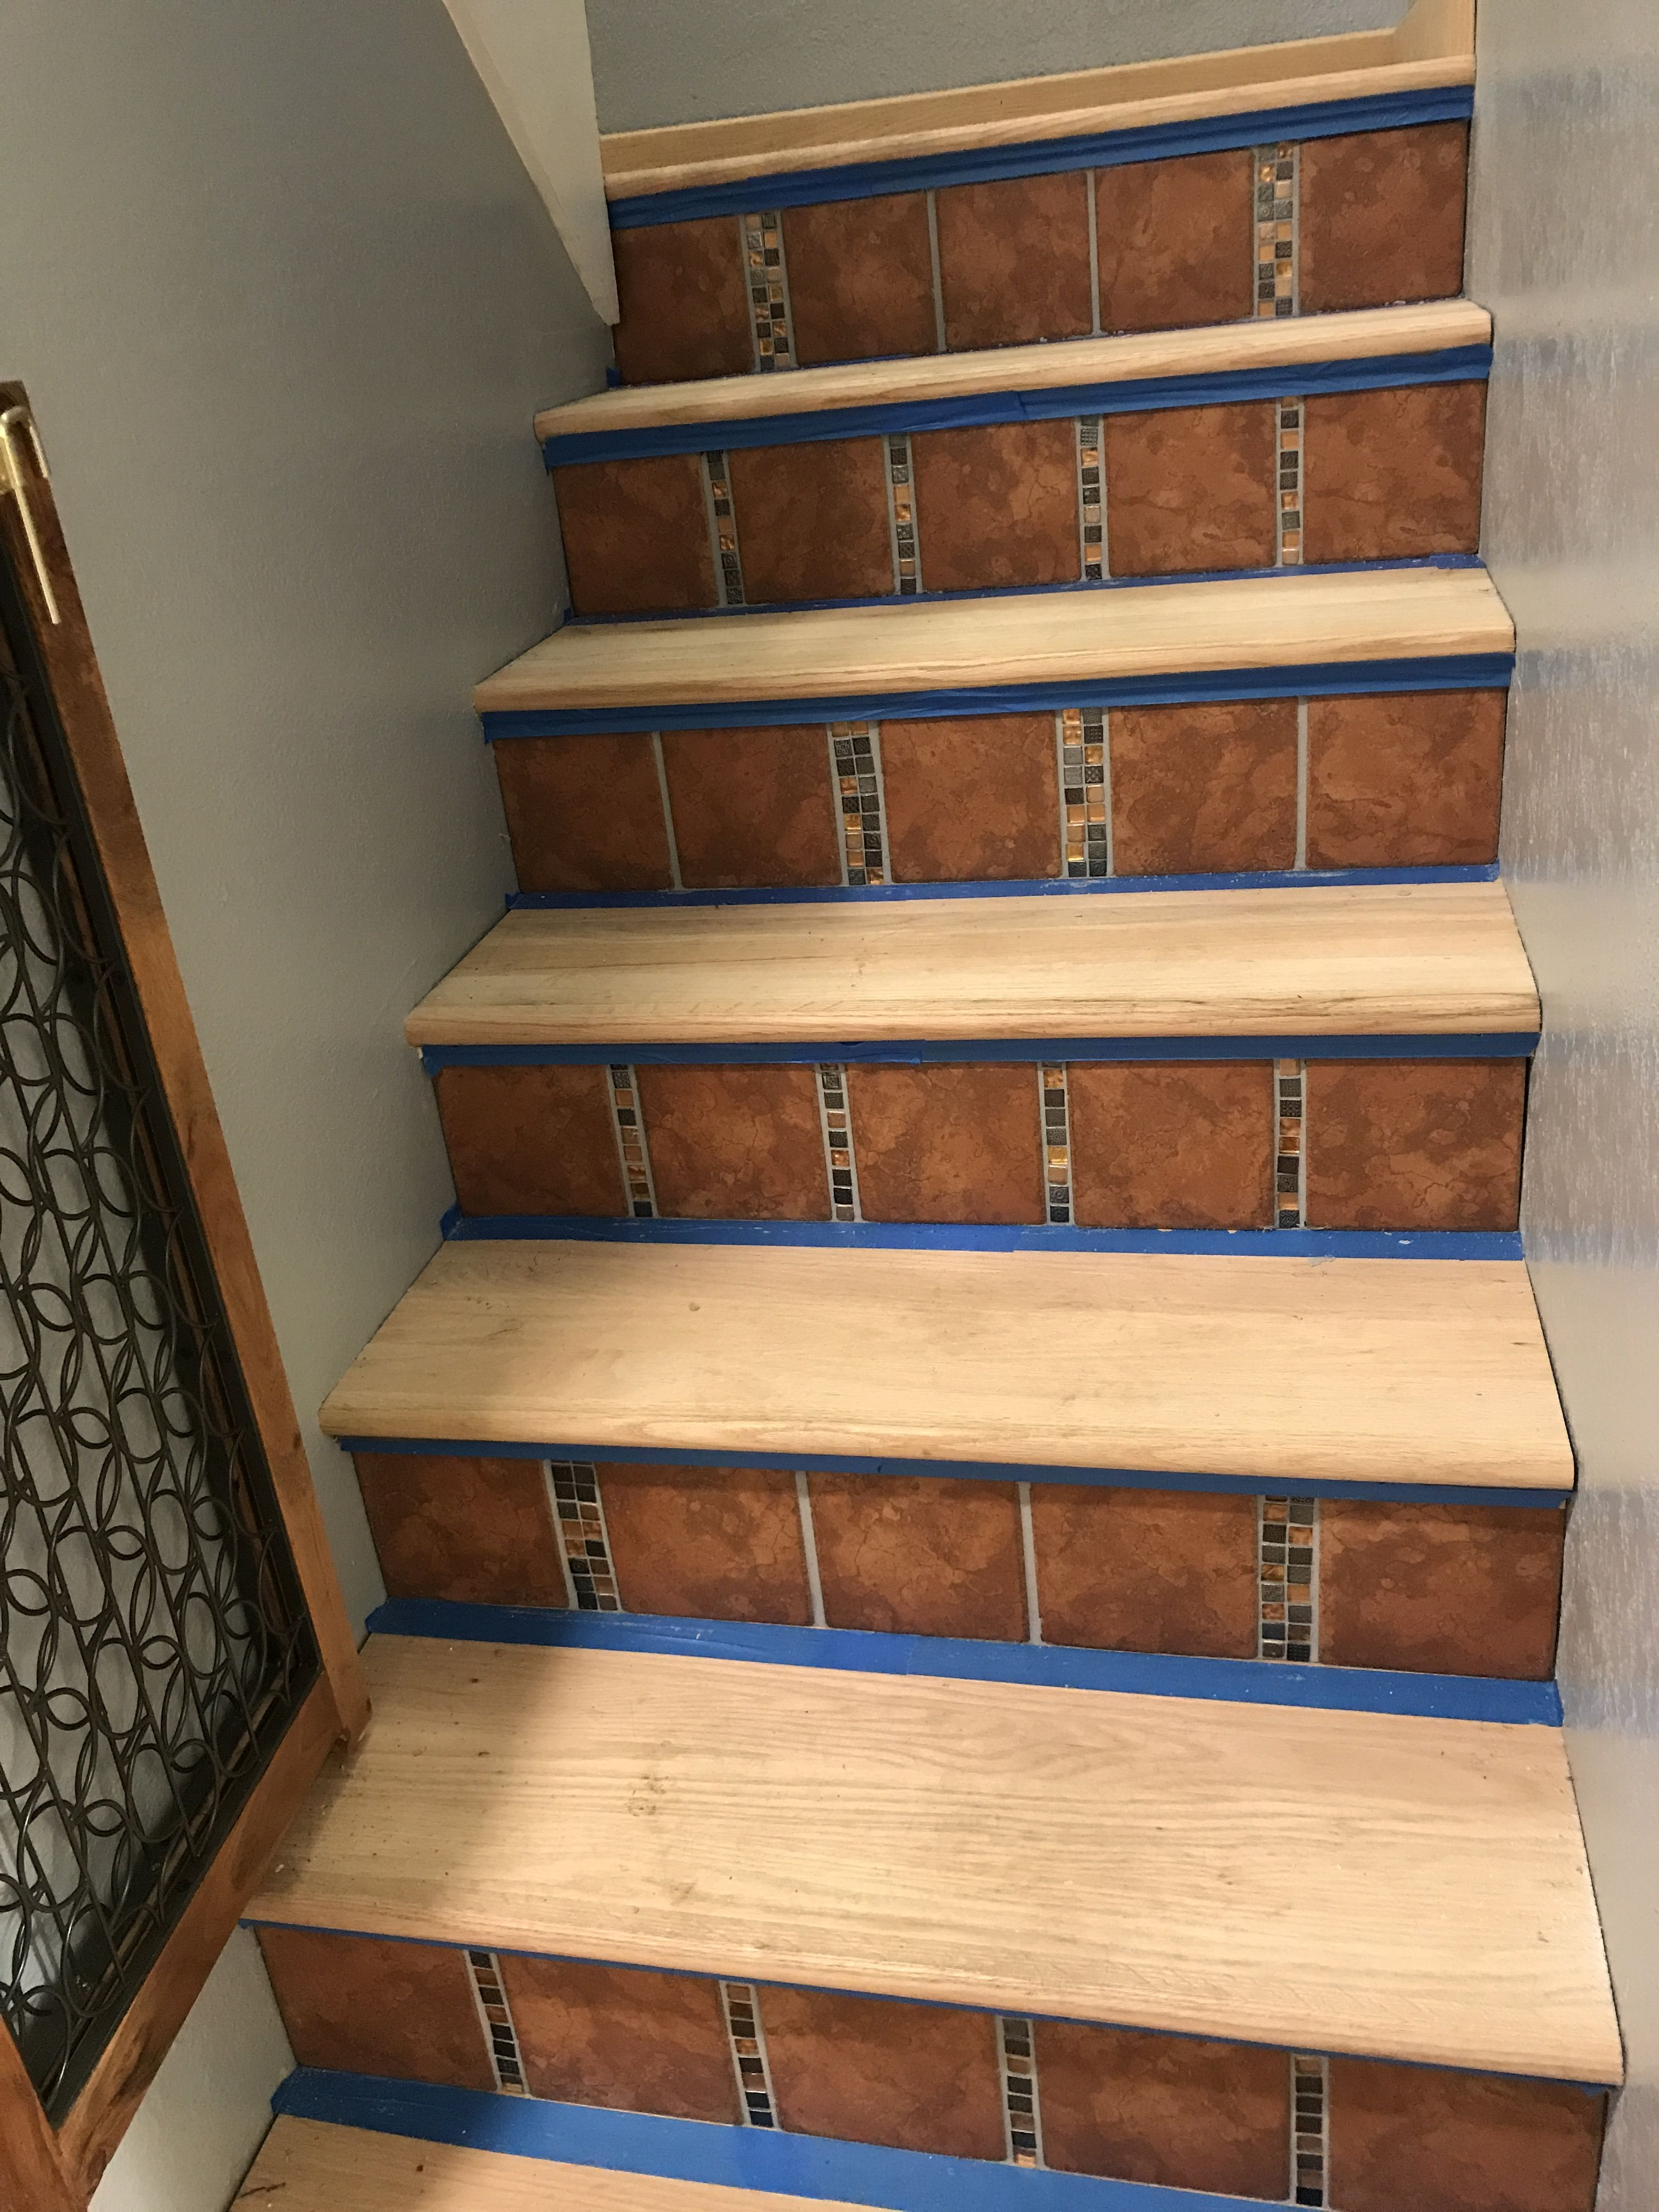 Riser Tiles Had To Be Set Before Stair Treads Could Be Installed. Stair  Treads Have